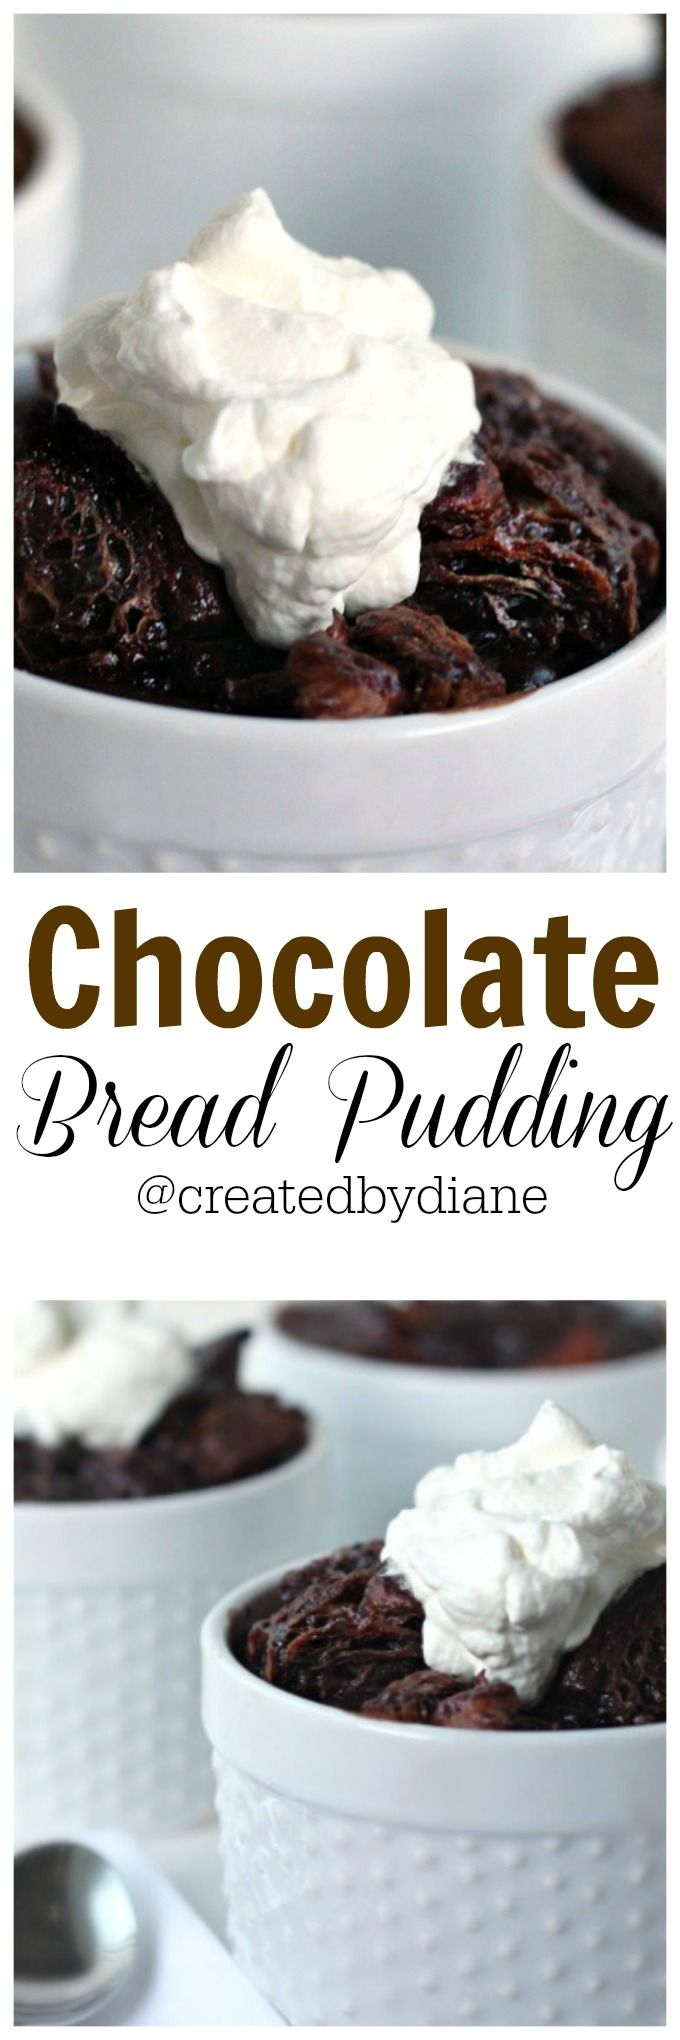 chocolate bread pudding recipe from @createdbydiane